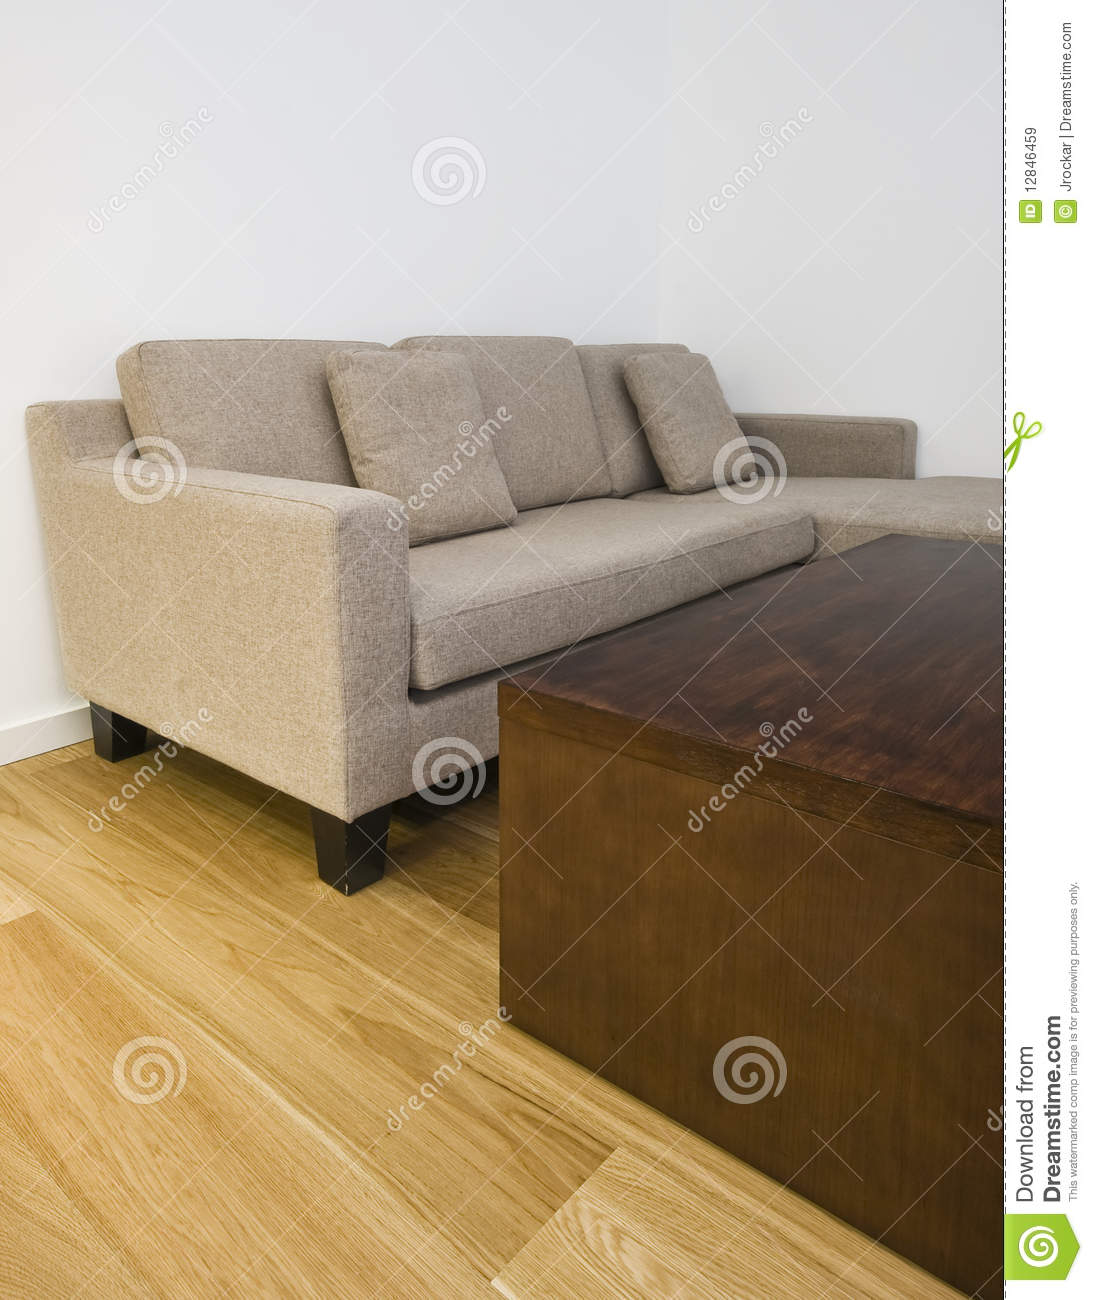 L Shape Sofa And Coffee Table Stock Image Image Of Corner Cushion - Coffee table for l shaped sofa